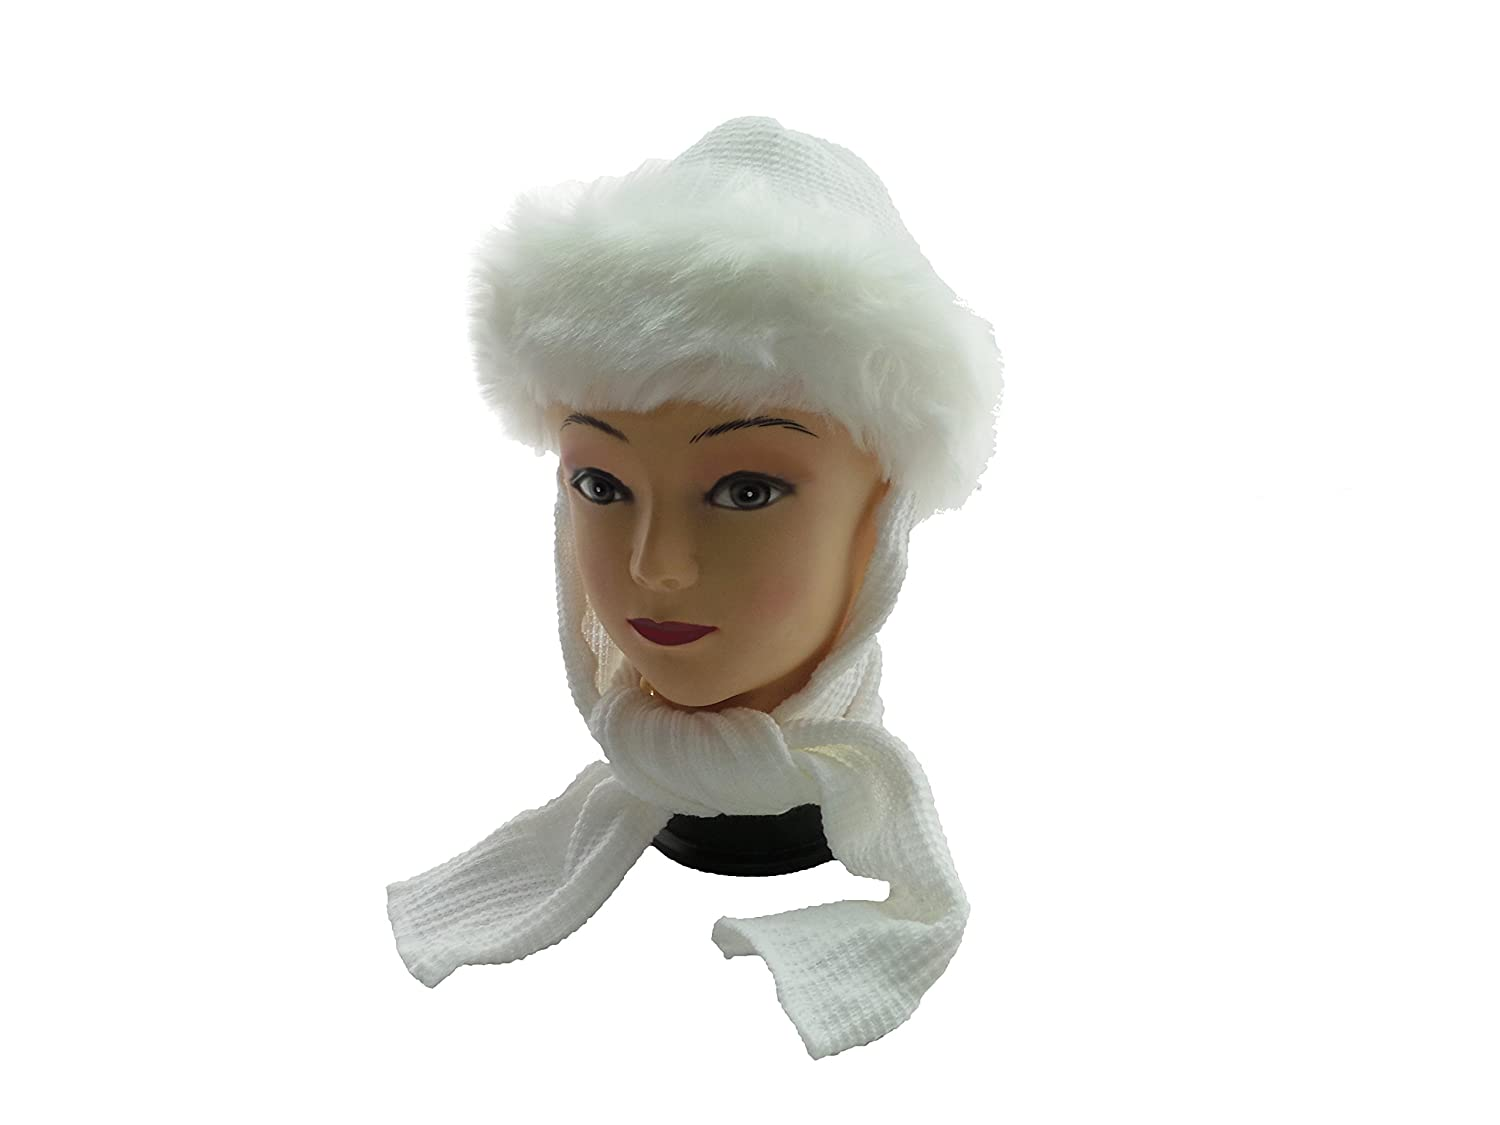 TinyTitans White Baby Girls Classic Russian Winter Fur Scarf Hat 6-24months  (M (12-18months))  Amazon.co.uk  Baby 0afba9a42